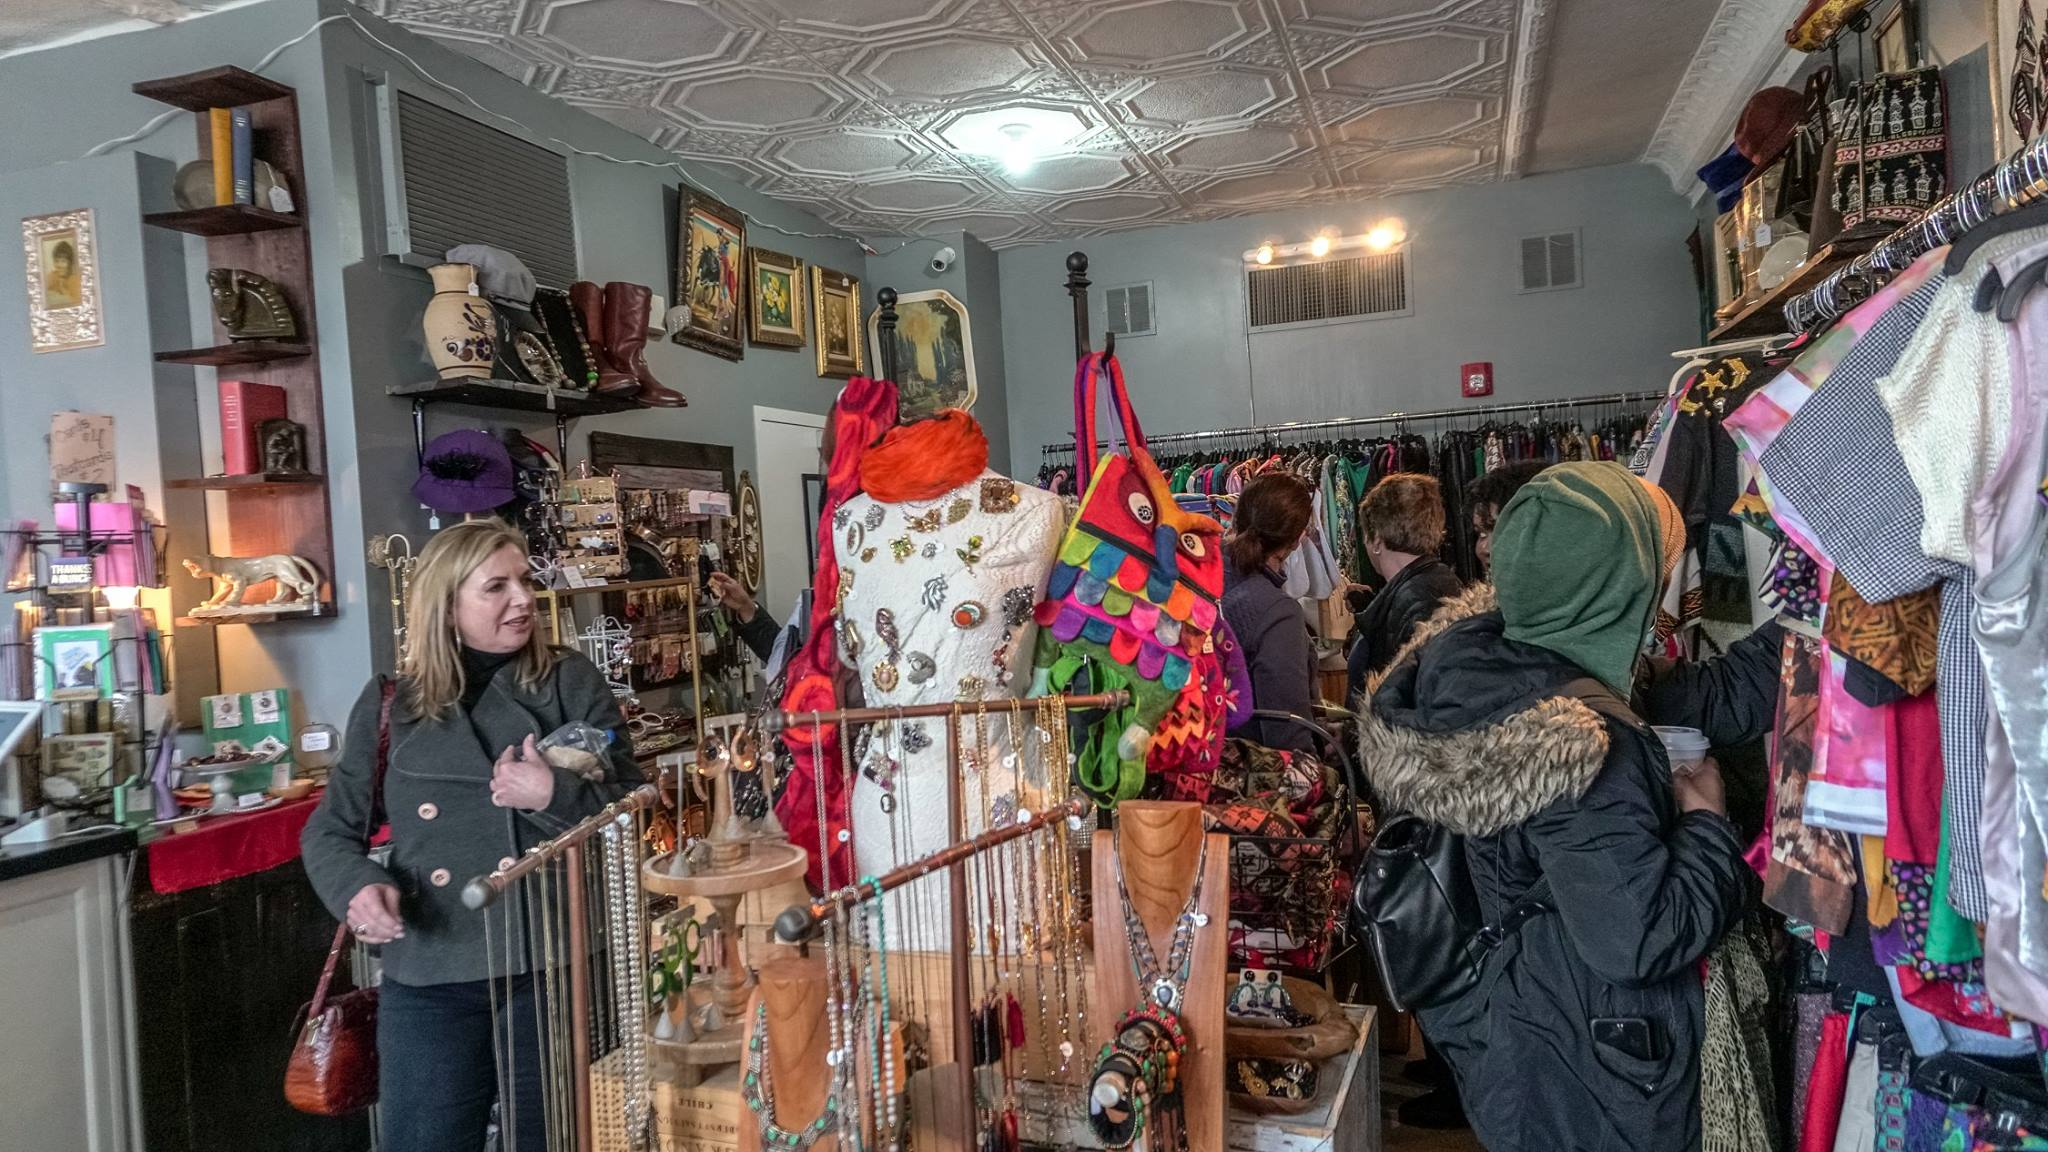 DXF tour participants exploring the groovy and unique Mama Coo's boutique on our Corktown walking tour